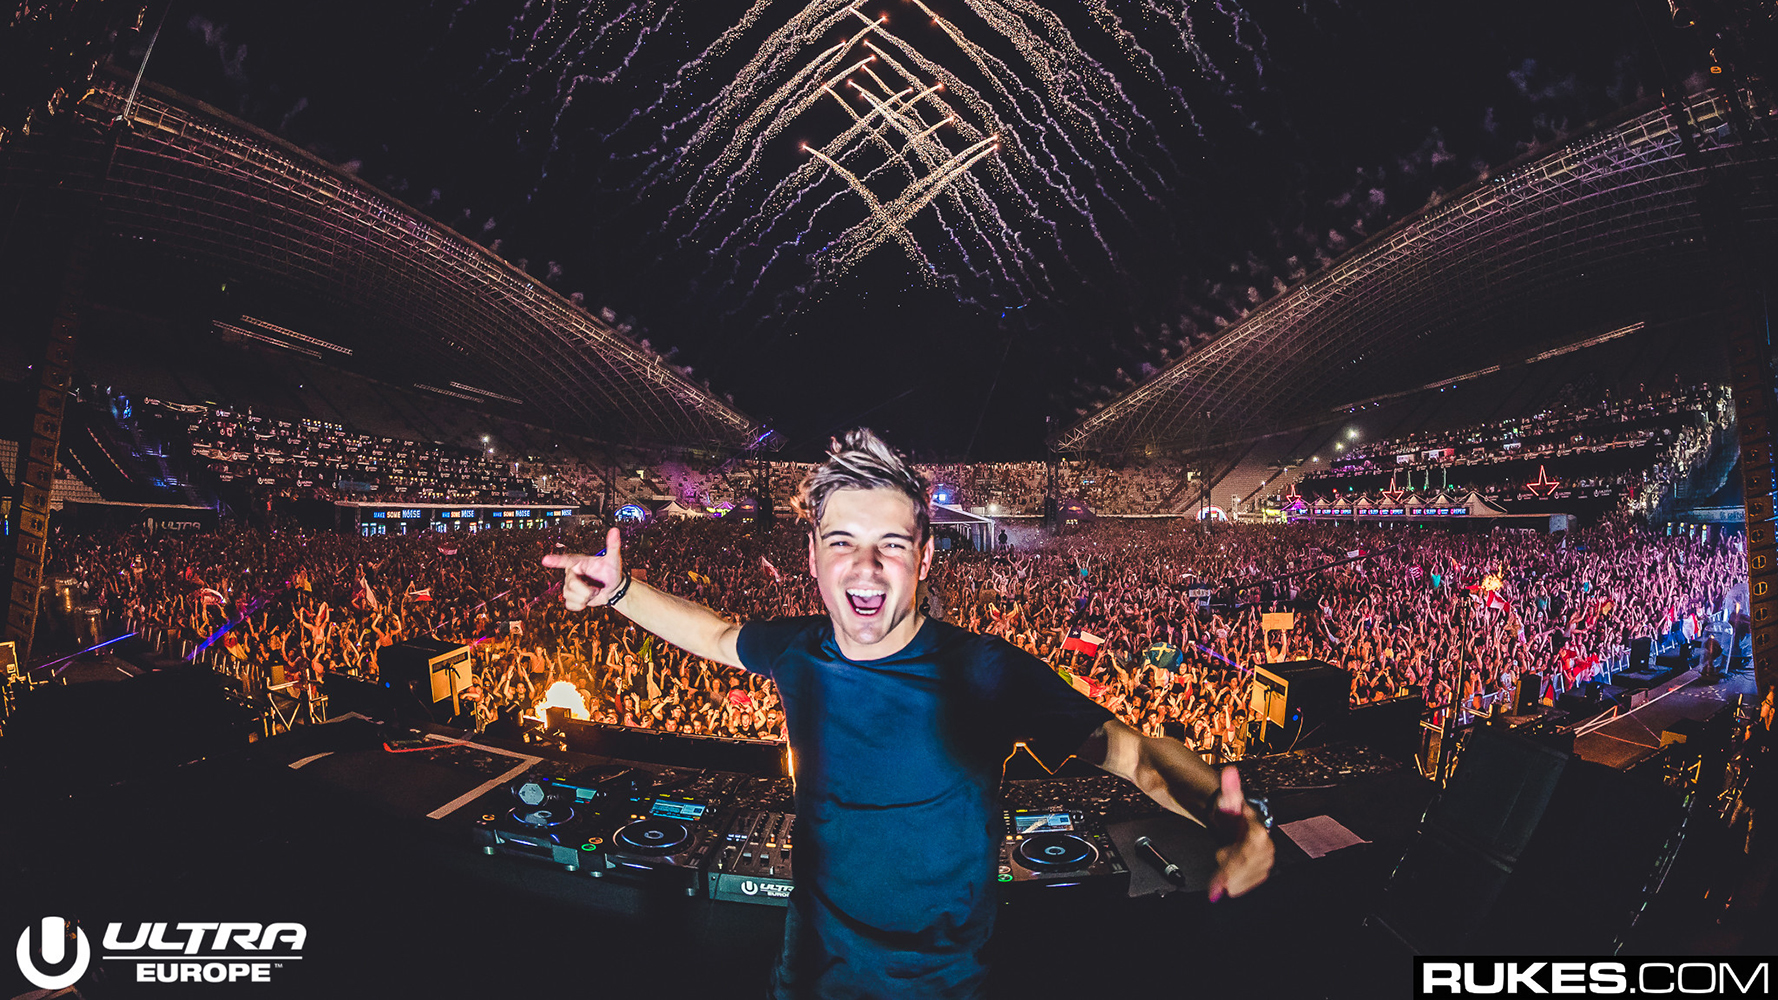 Released 5 Years Ago: Martin Garrix & Third Party – Lions In The Wild